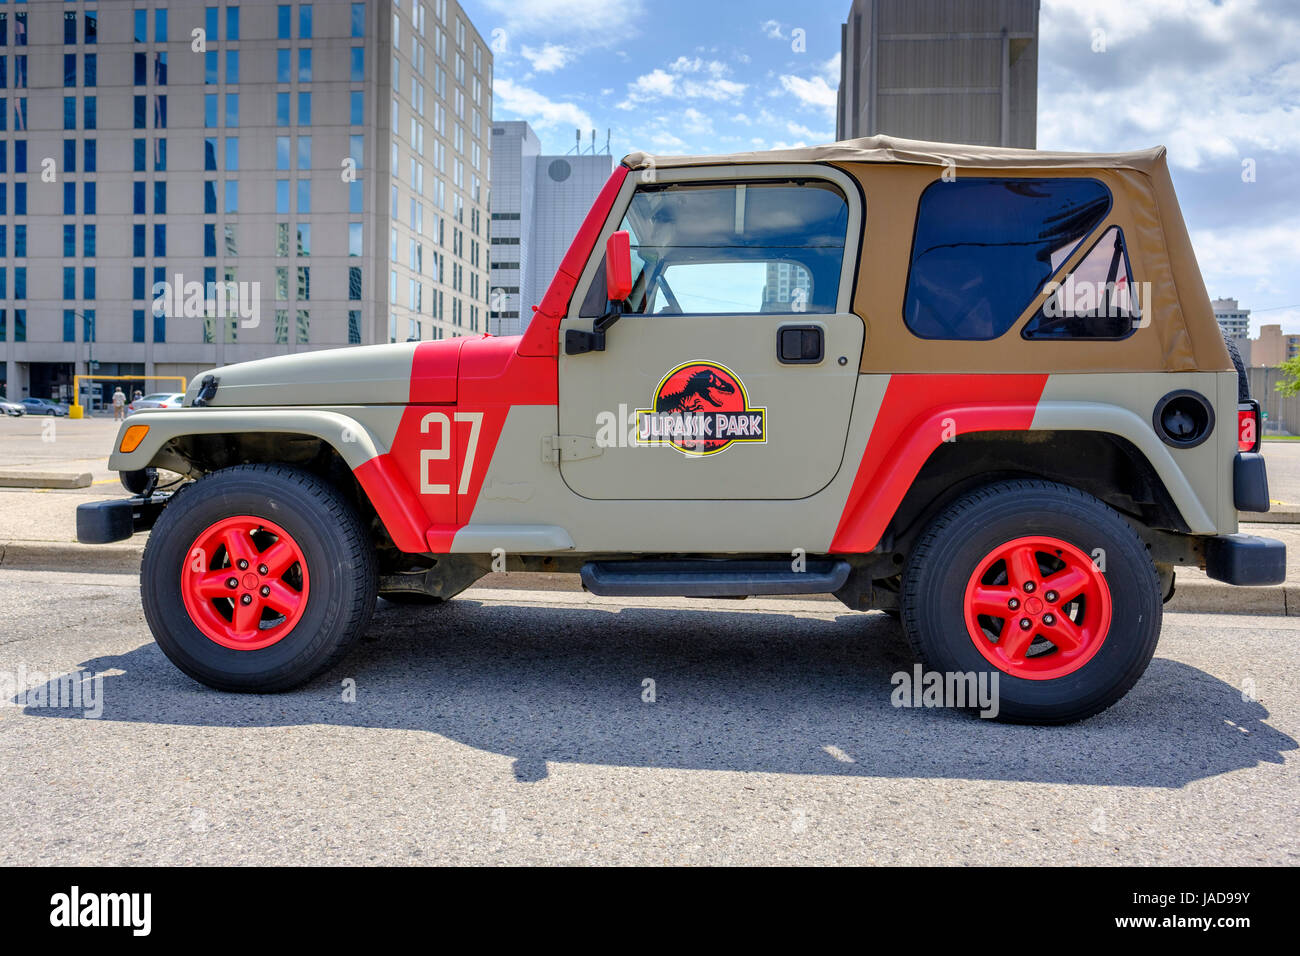 Finest Custom painted Jurassic Park Jeep, Jurassic Park logo, 4x4 vehicle  LK65